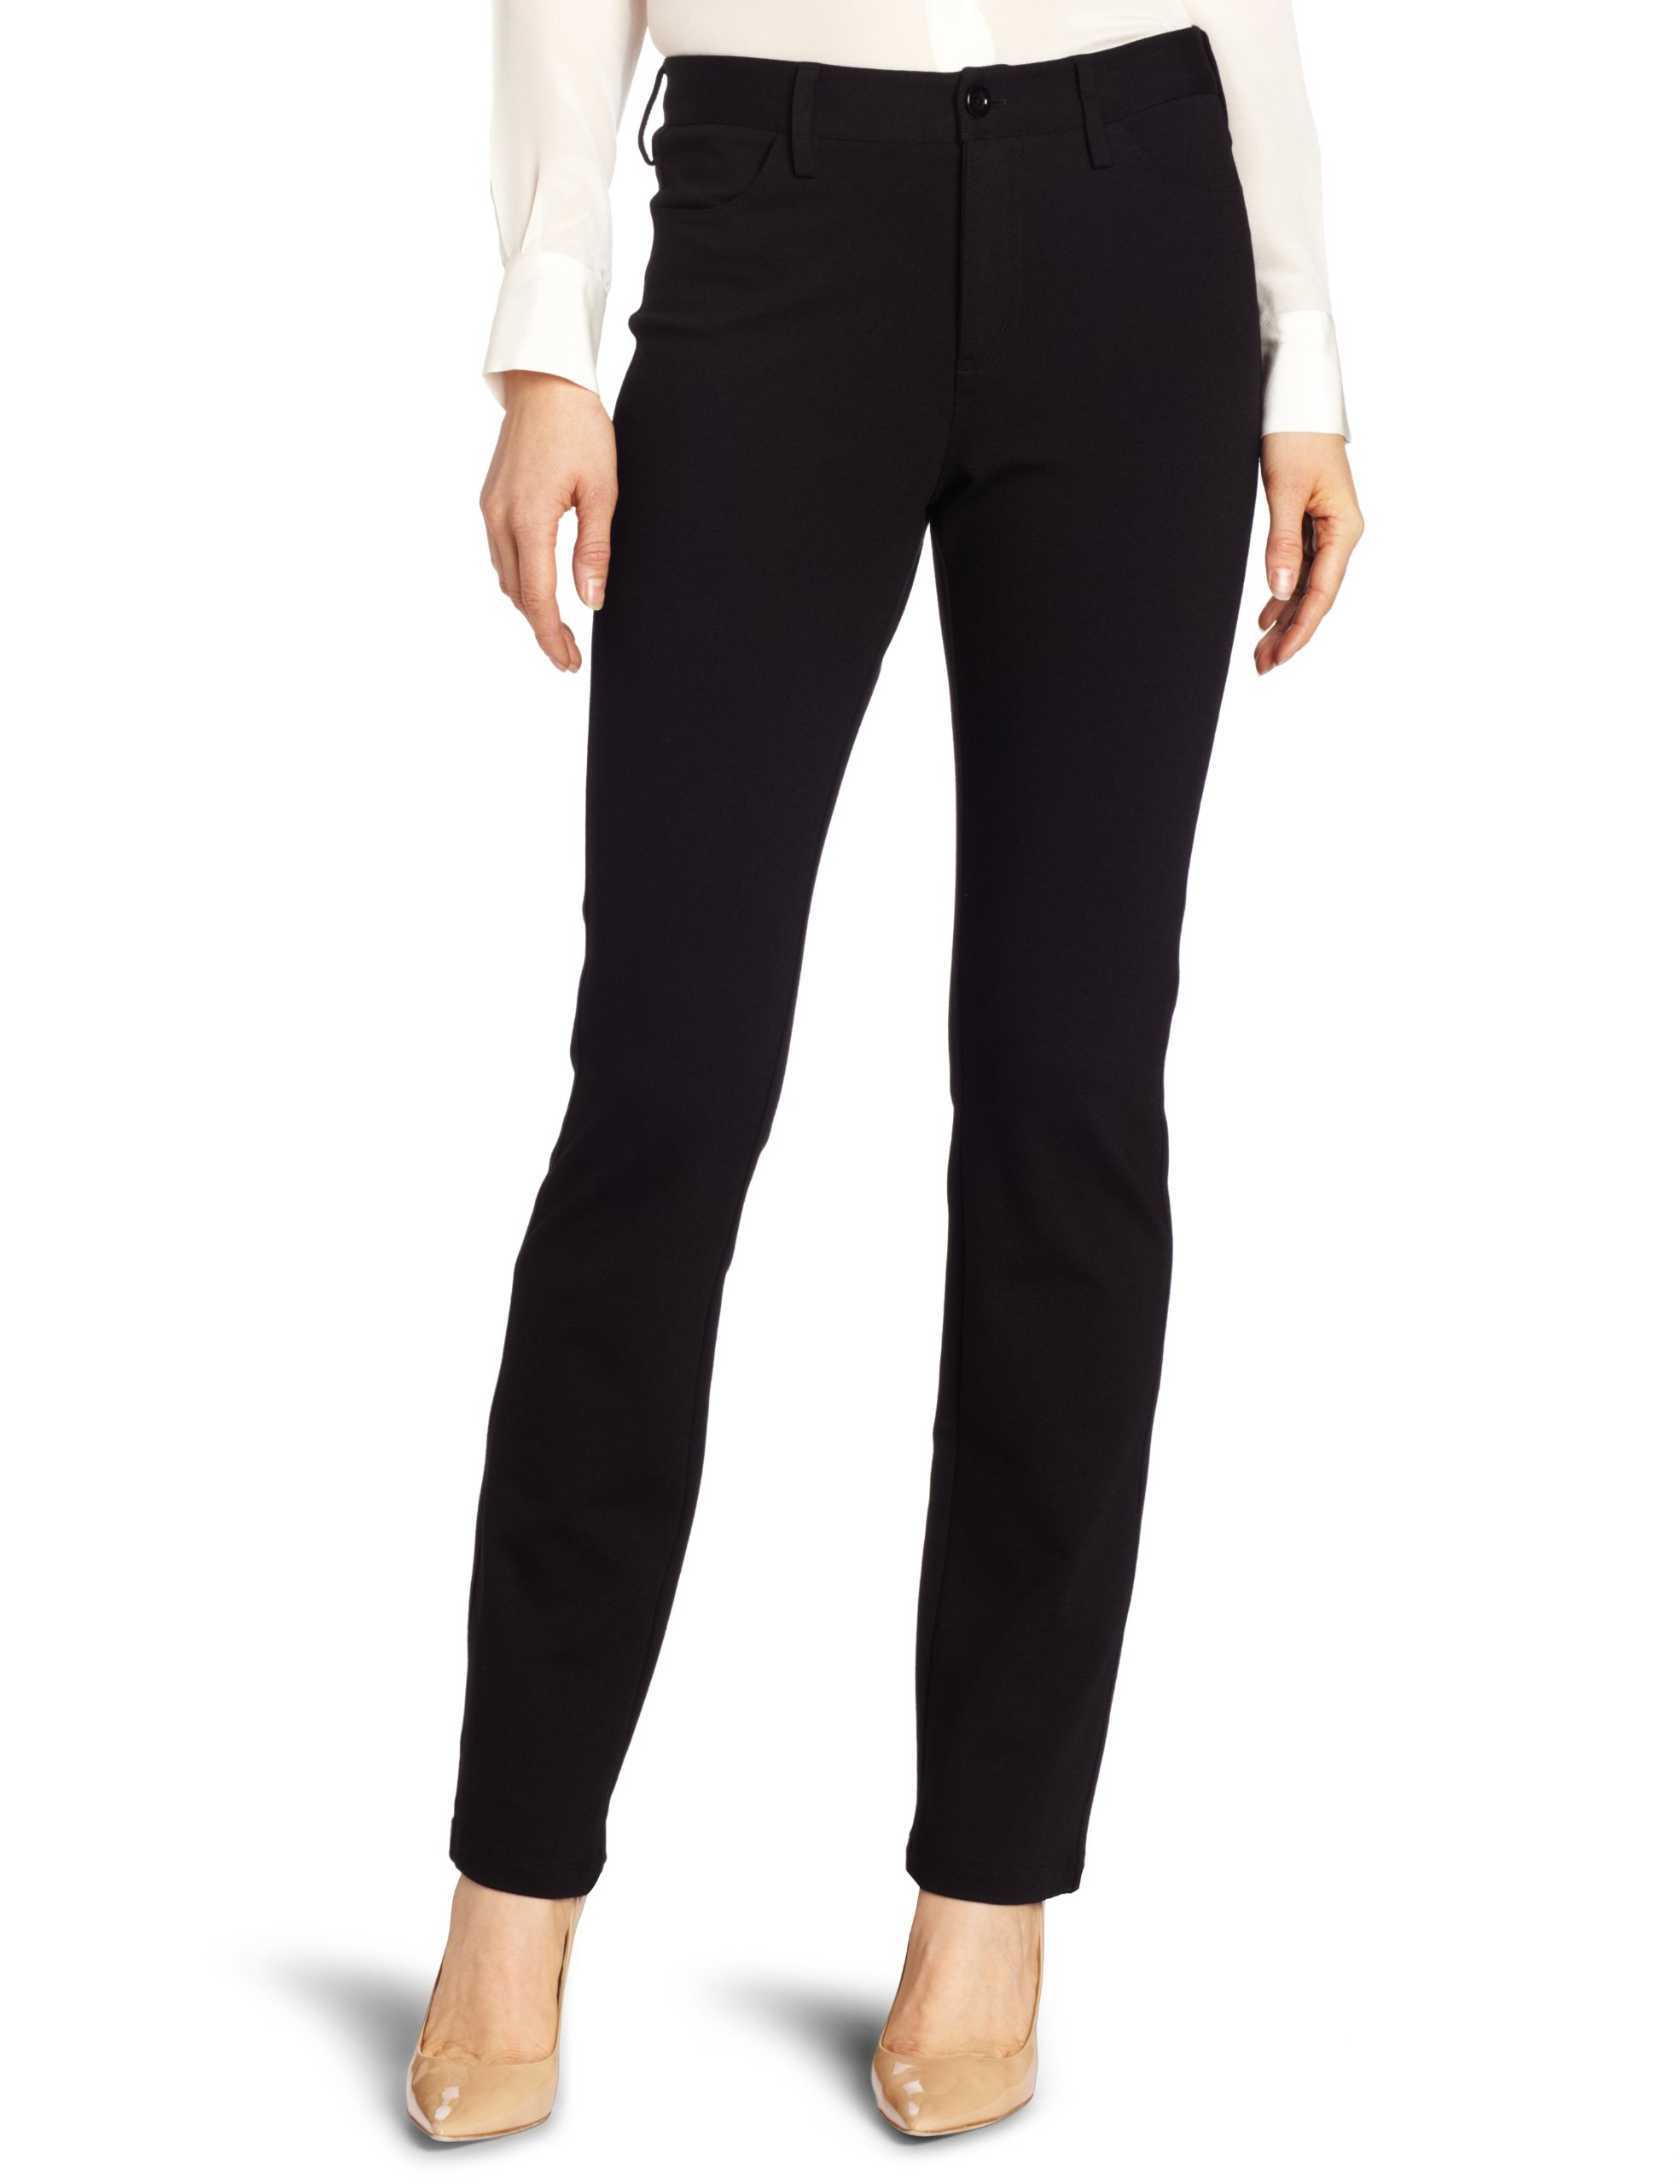 NYDJ Women's Samantha Slim Ponte Pant, Black, 14